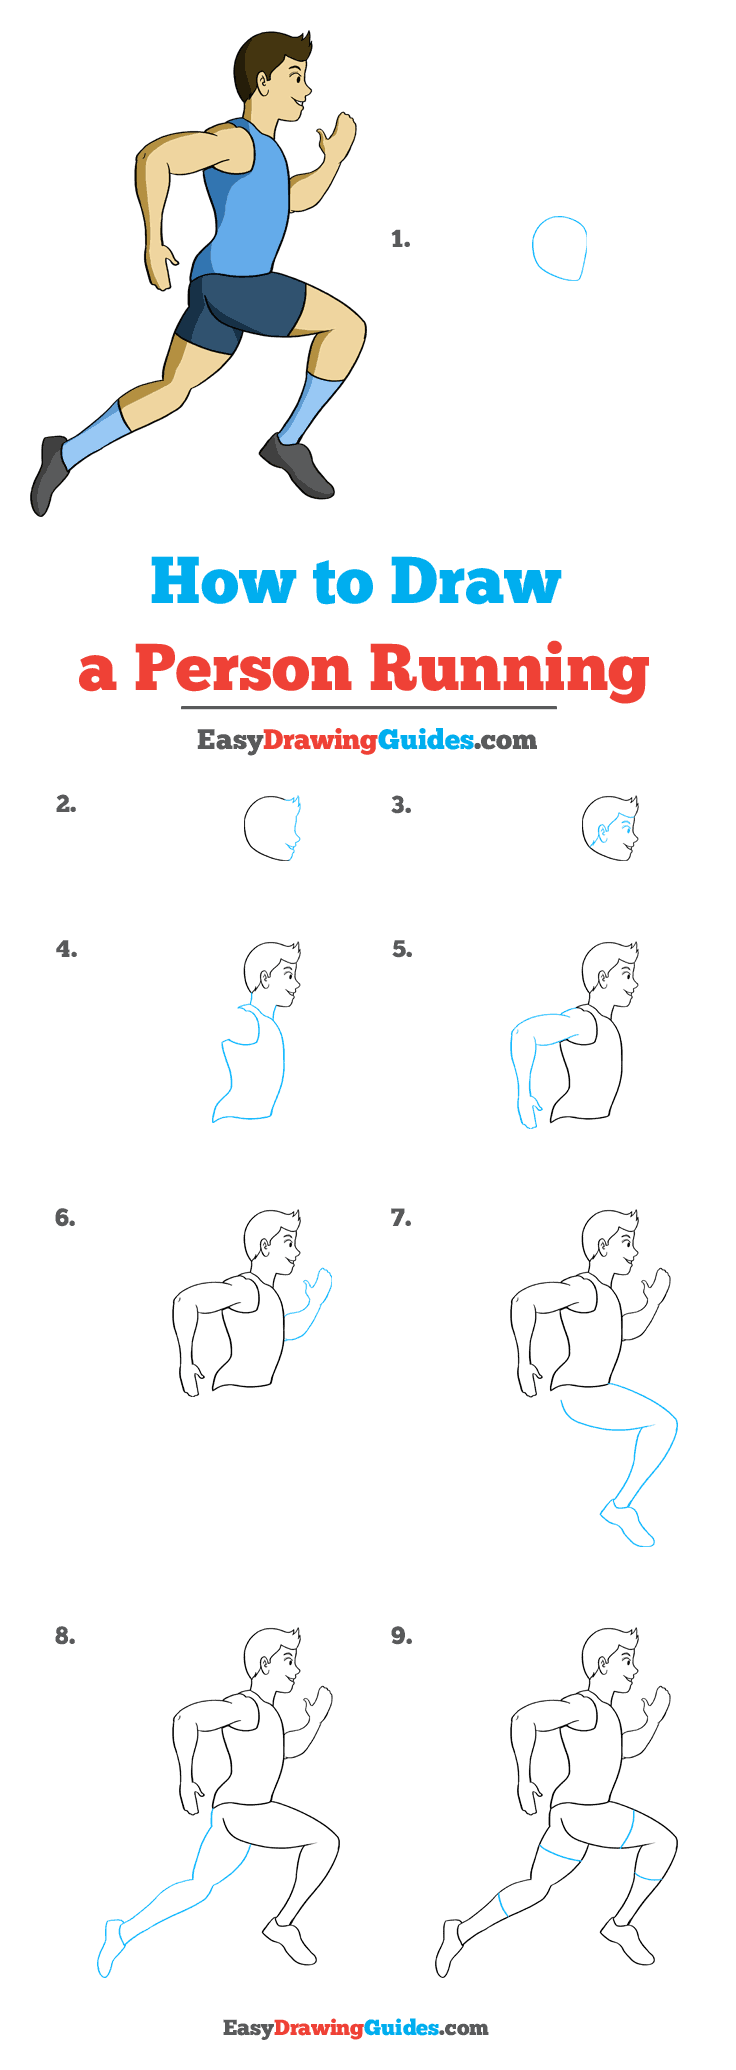 How to Draw a Person Running Step by Step Tutorial Image